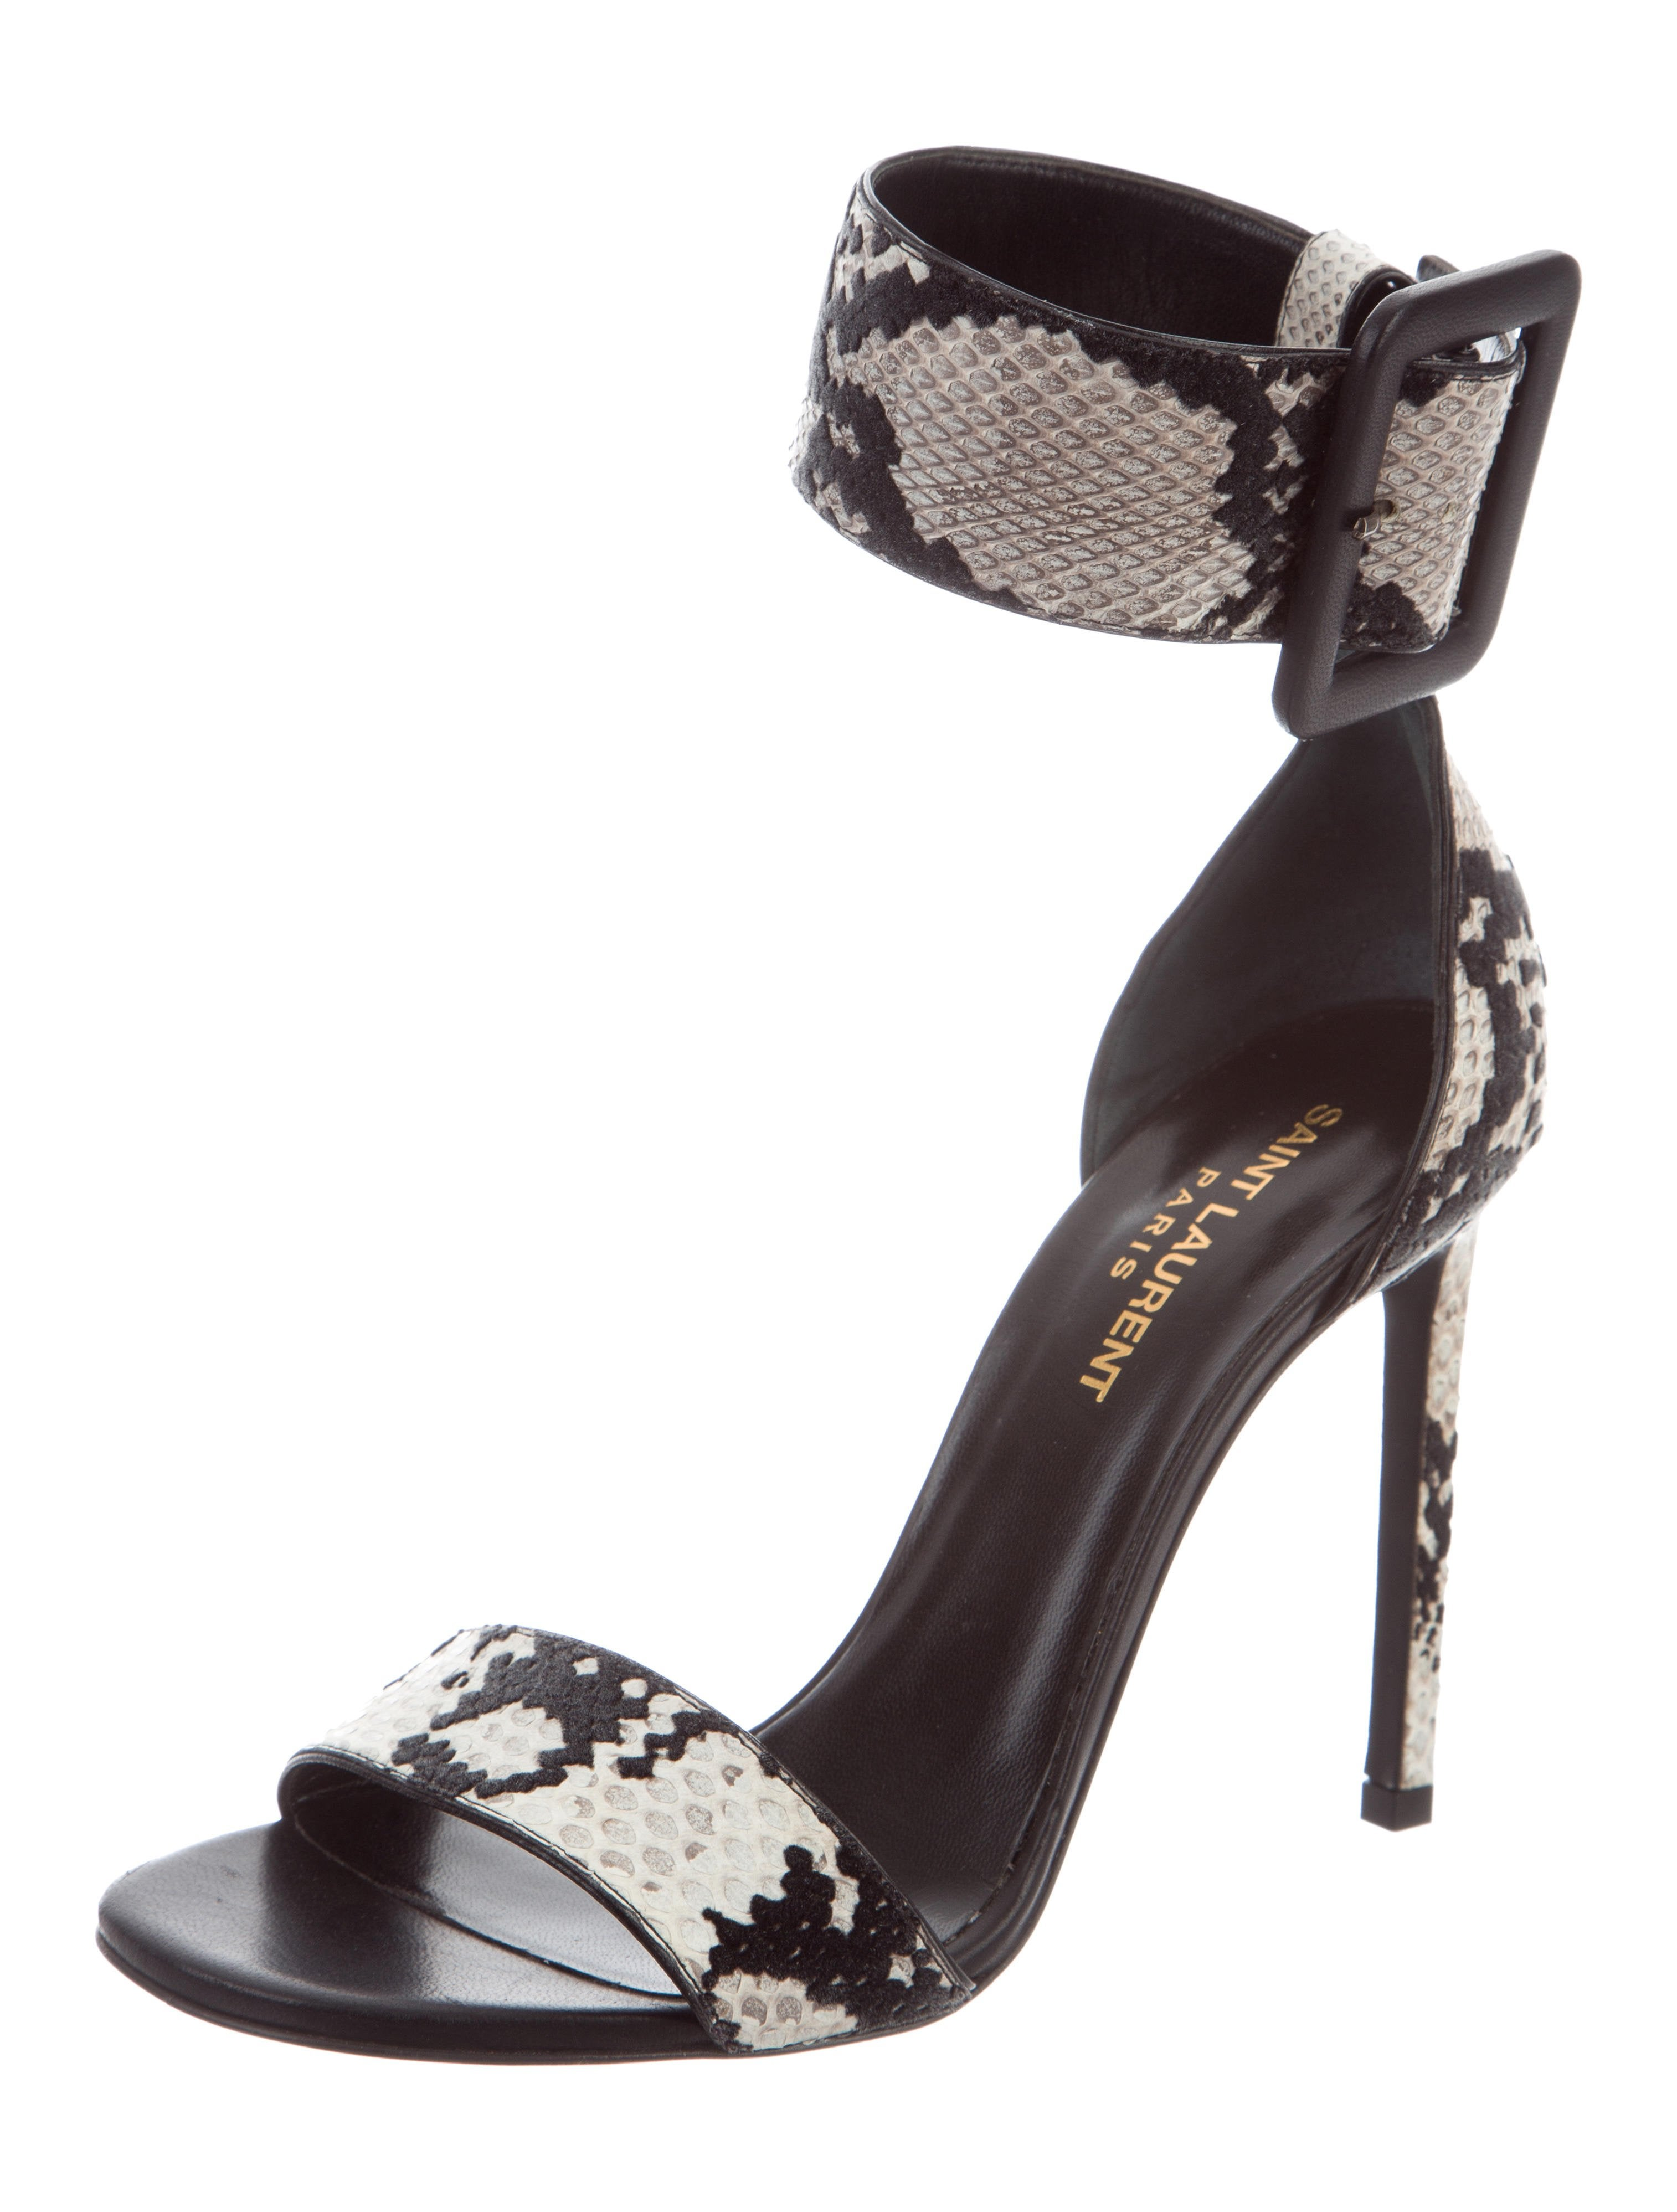 910c96cd51 Givenchy NEW Black White Snakeskin Leather Gladiator Ankle Sandals Heels in  Box at 1stdibs